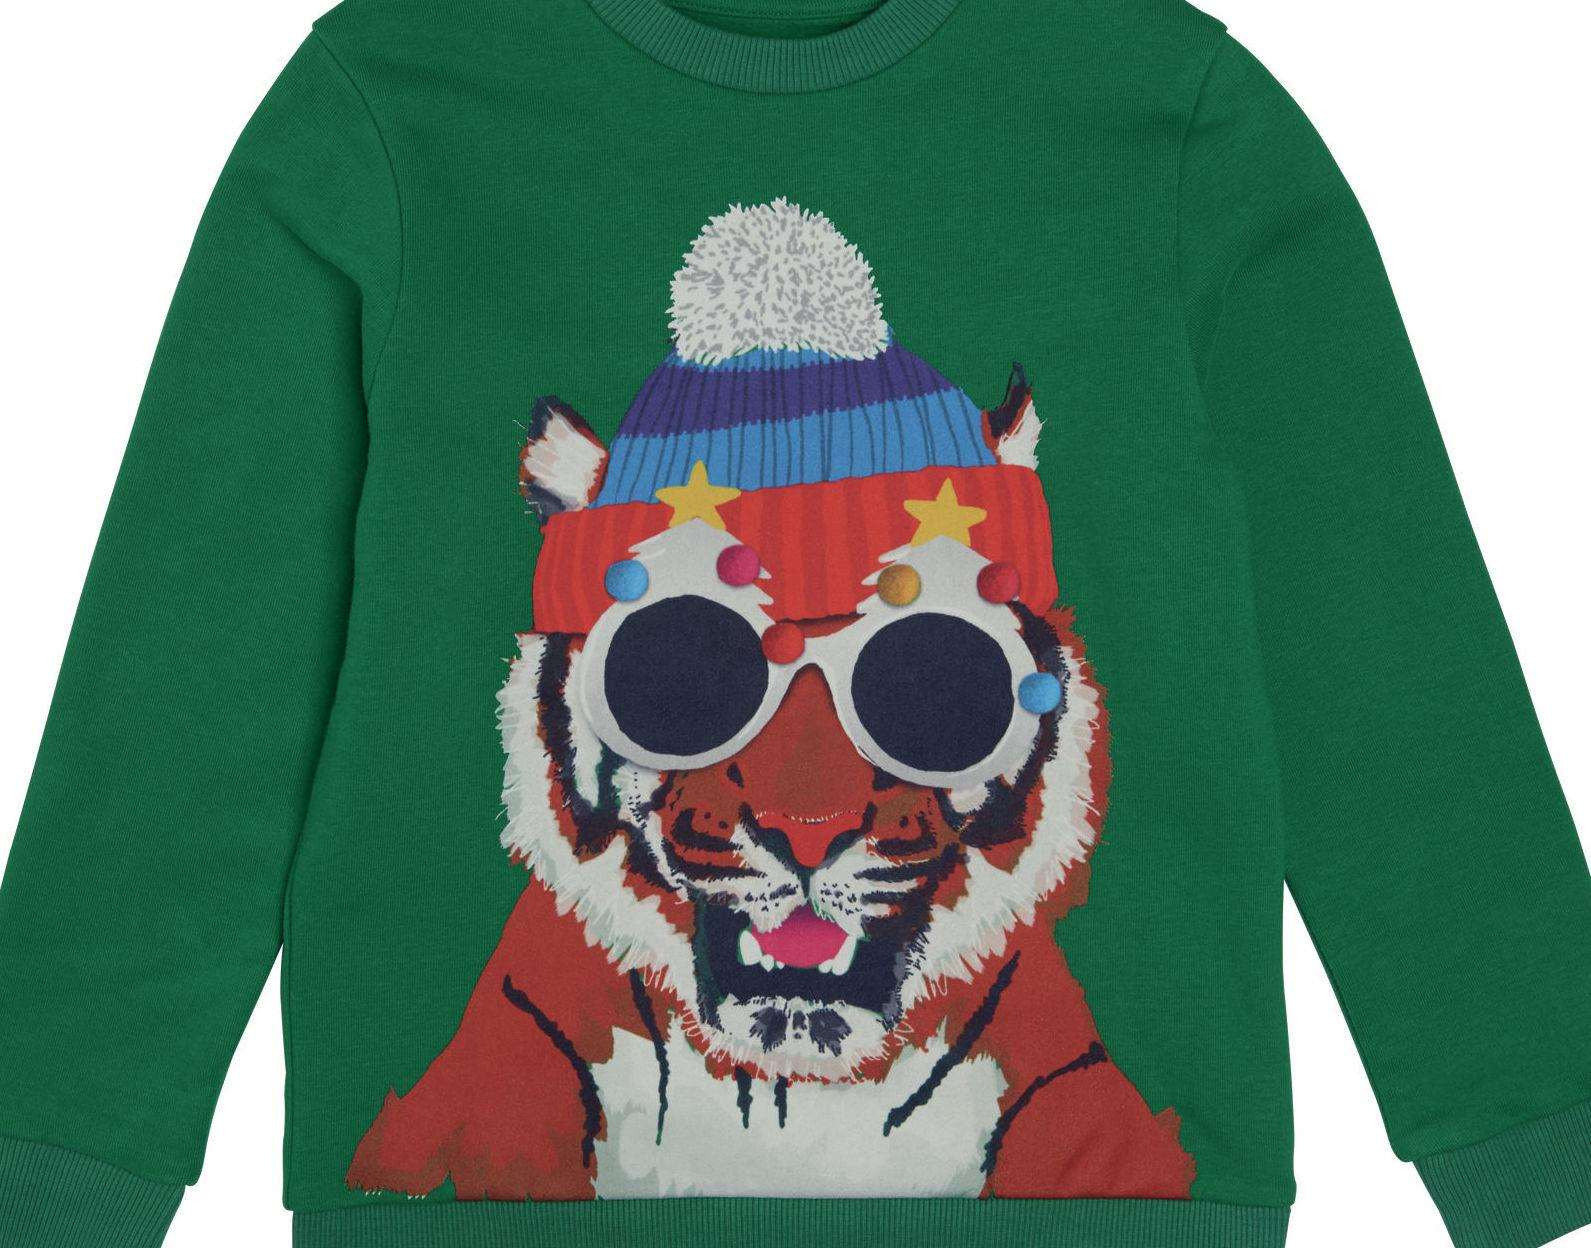 Give the kids a roar-some outfit to wear thanks to this tiger jumper from M&S for £15.